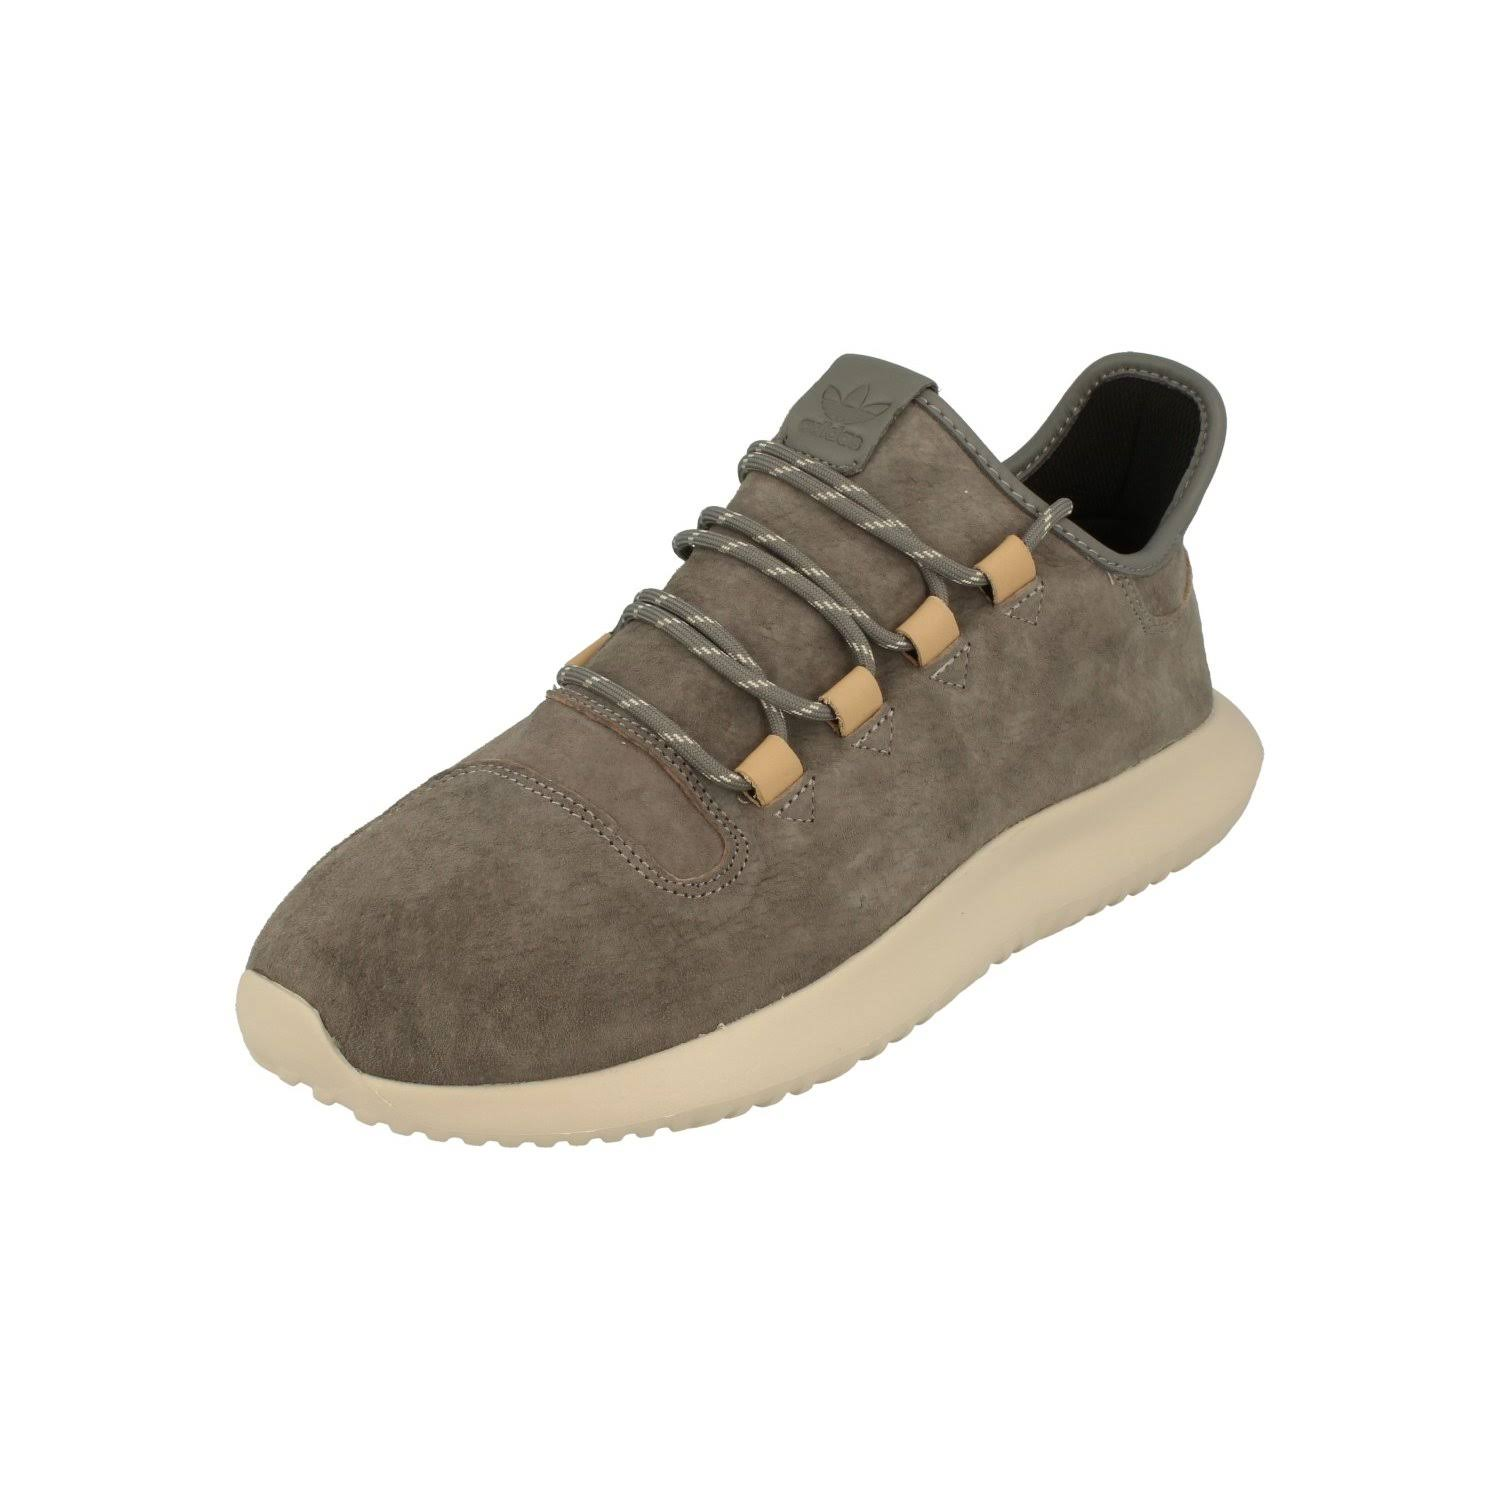 (9.5) Adidas Originals Tubular Shadow Mens Trainers Sneakers